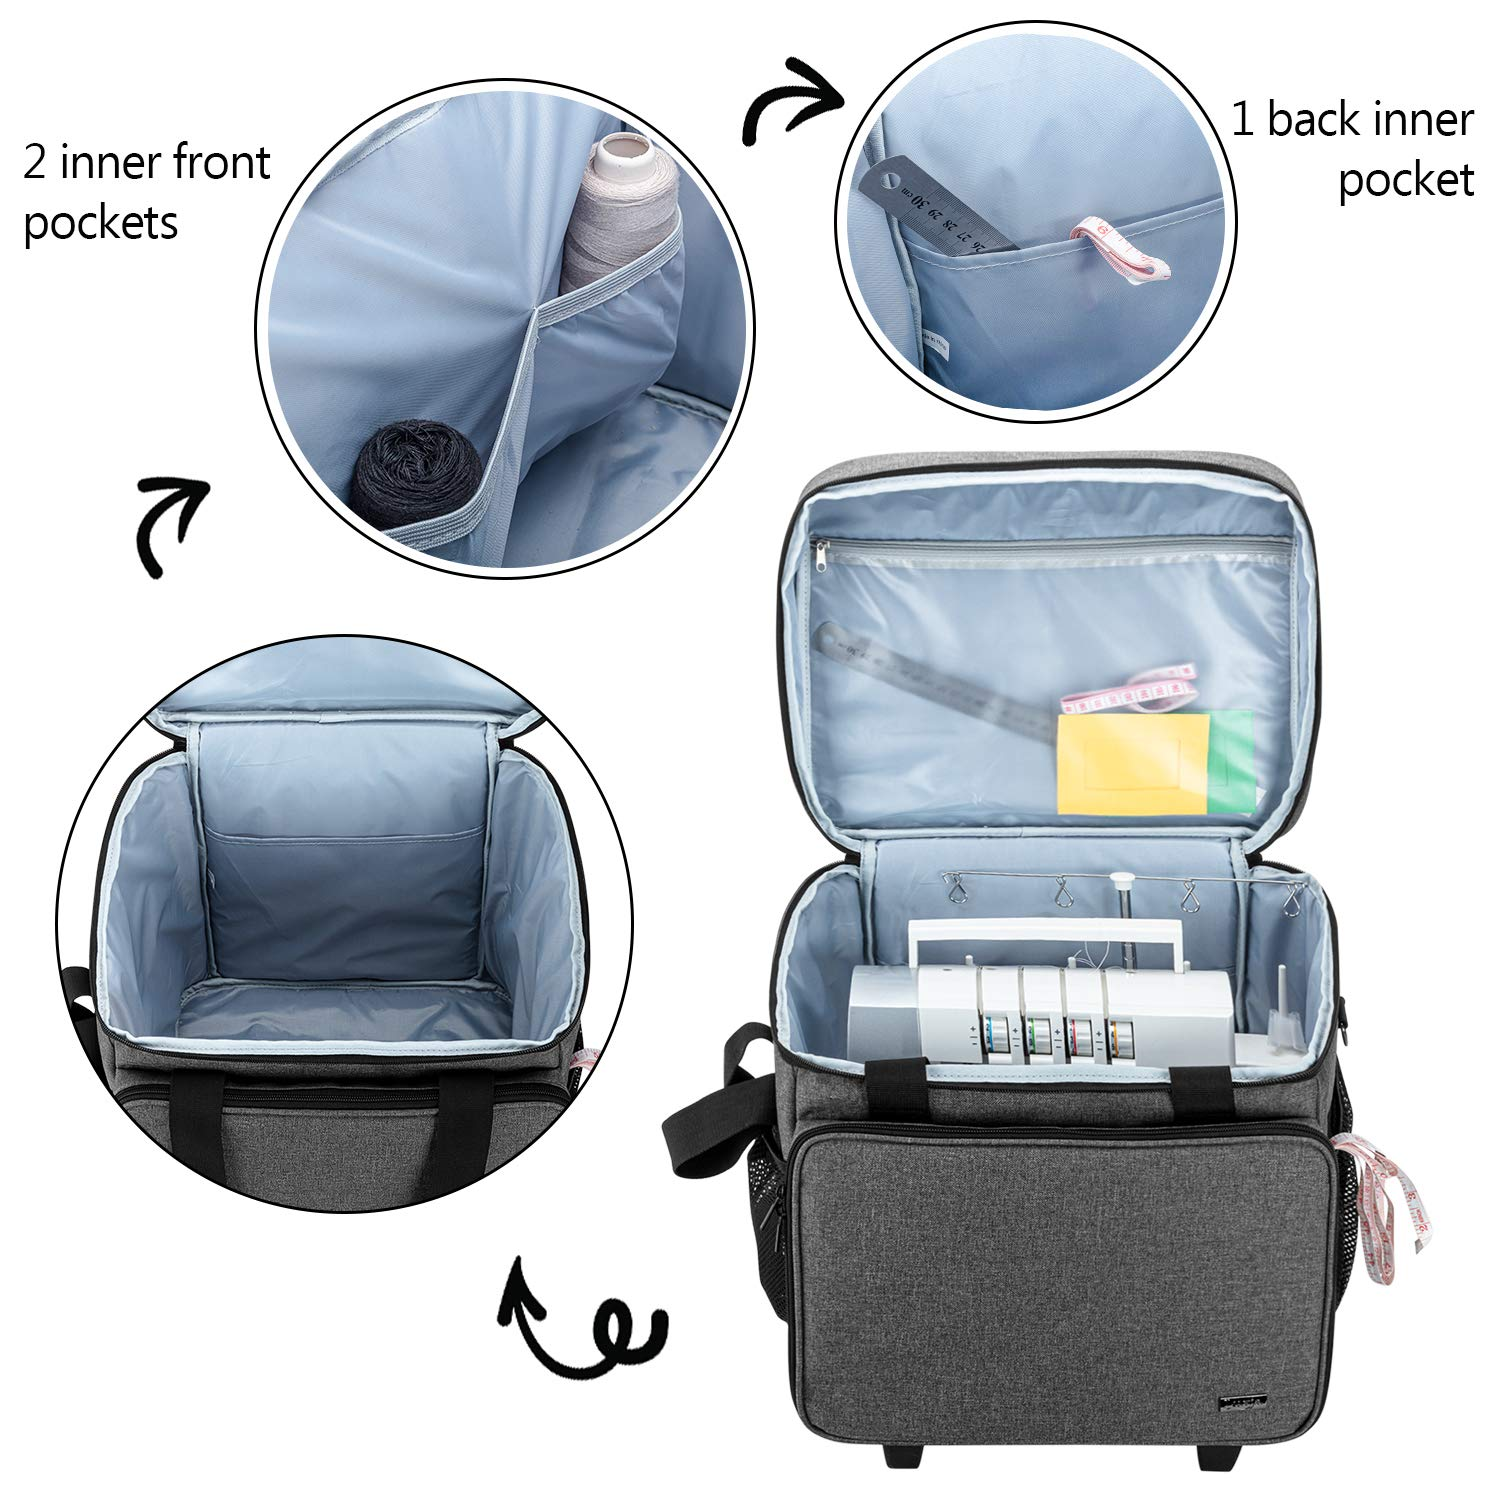 Gray Dots Luxja Overlock Sewing Machine Case with Detachable Trolley Dolly Fit for Most Standard Serger Sewing Machines Serger Case with Accessories Storage Pockets